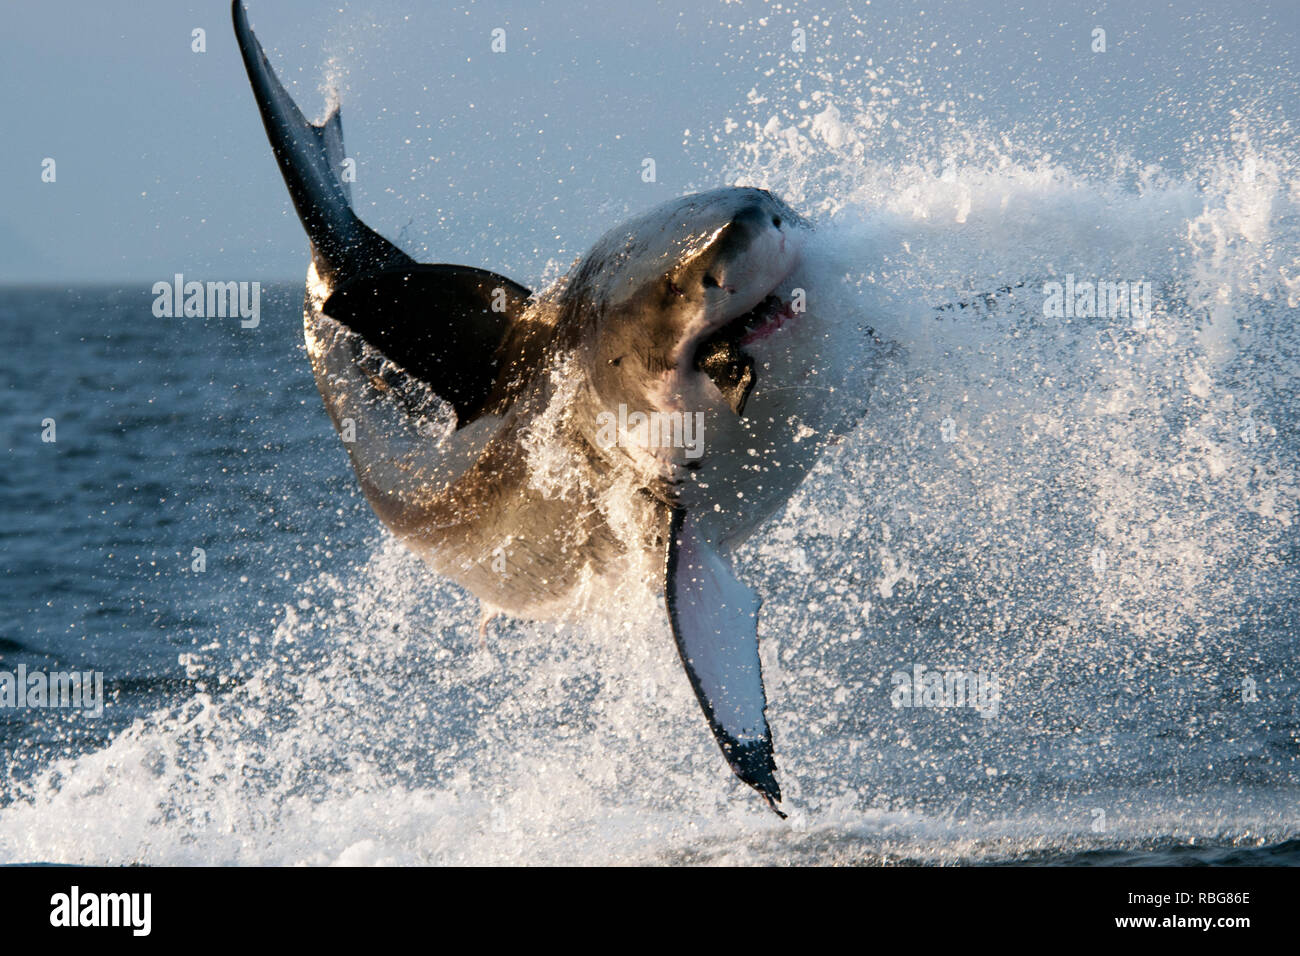 Breach. DRAMATIC images capture a huge 14 foot-long Great White shark hurtling through the air after it breached the water in search of a tasty meal. The action shots show the 2,000lb shark launching itself into the air as water is sprayed everywhere. Other stunning pictures and video delve underwater and show a different Great White shark swimming through the ocean and exploring the diver in a cage. The incredible breach was captured in False Bay, South Africa by photographer David Nazareno Barragan (33), from Barcelona, Spain who also filmed the Great Whites underwater in Isla Guadalupe, Mex Stock Photo